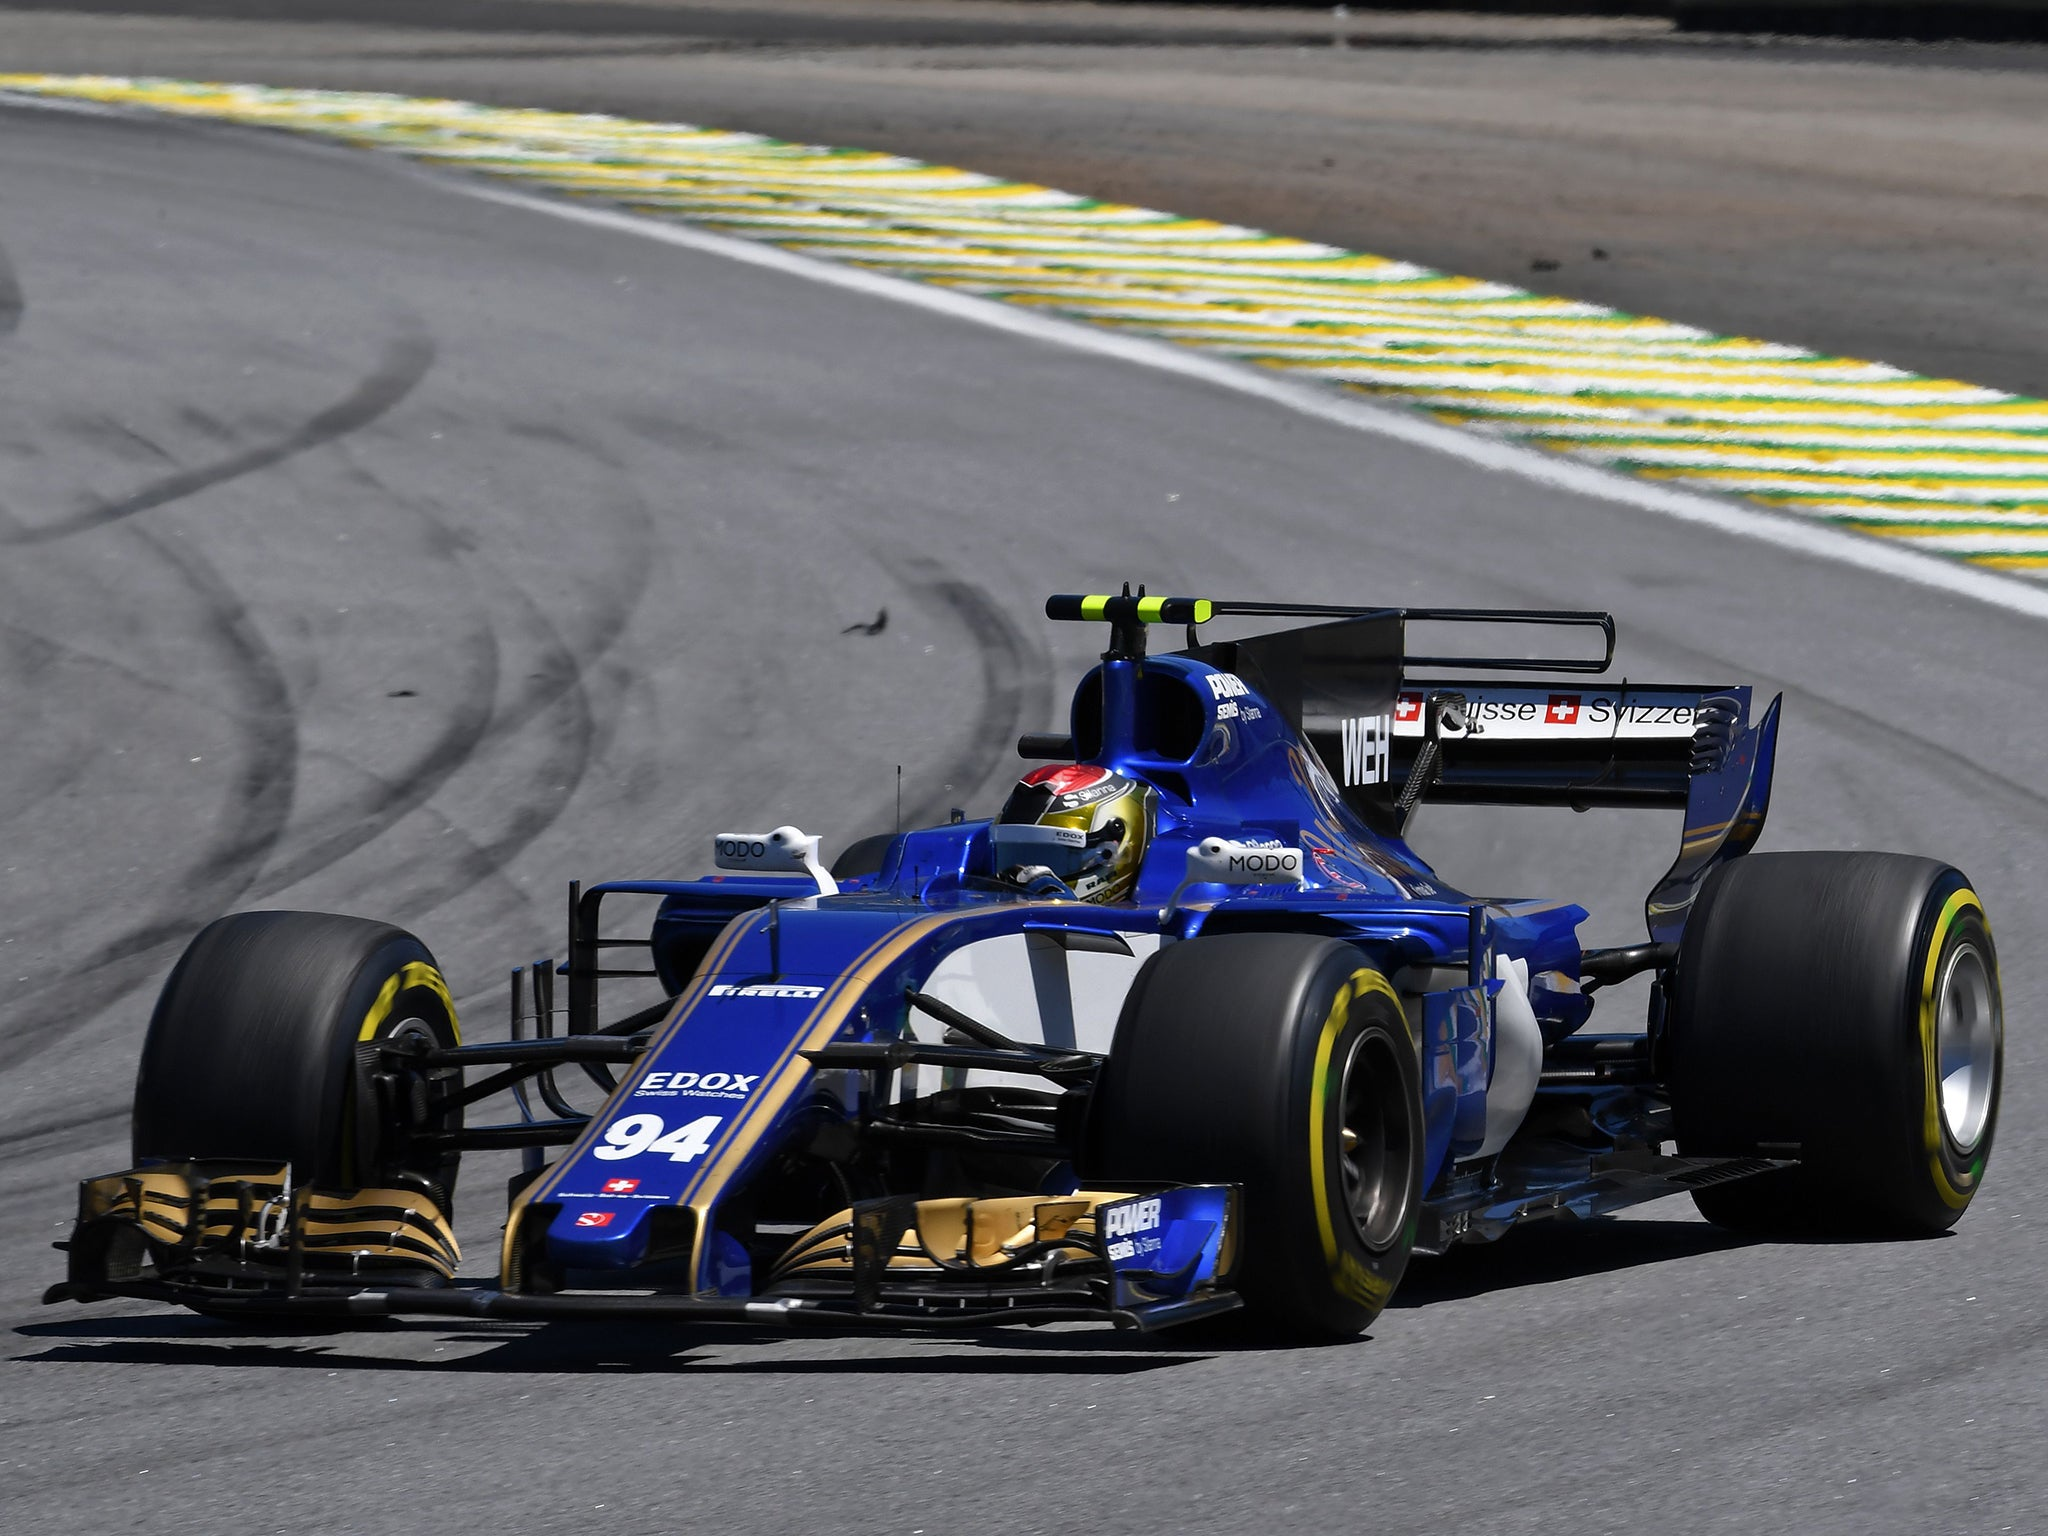 sauber team up with alfa romeo for f1 2018 after agreeing 39 technical and commercial partnership. Black Bedroom Furniture Sets. Home Design Ideas